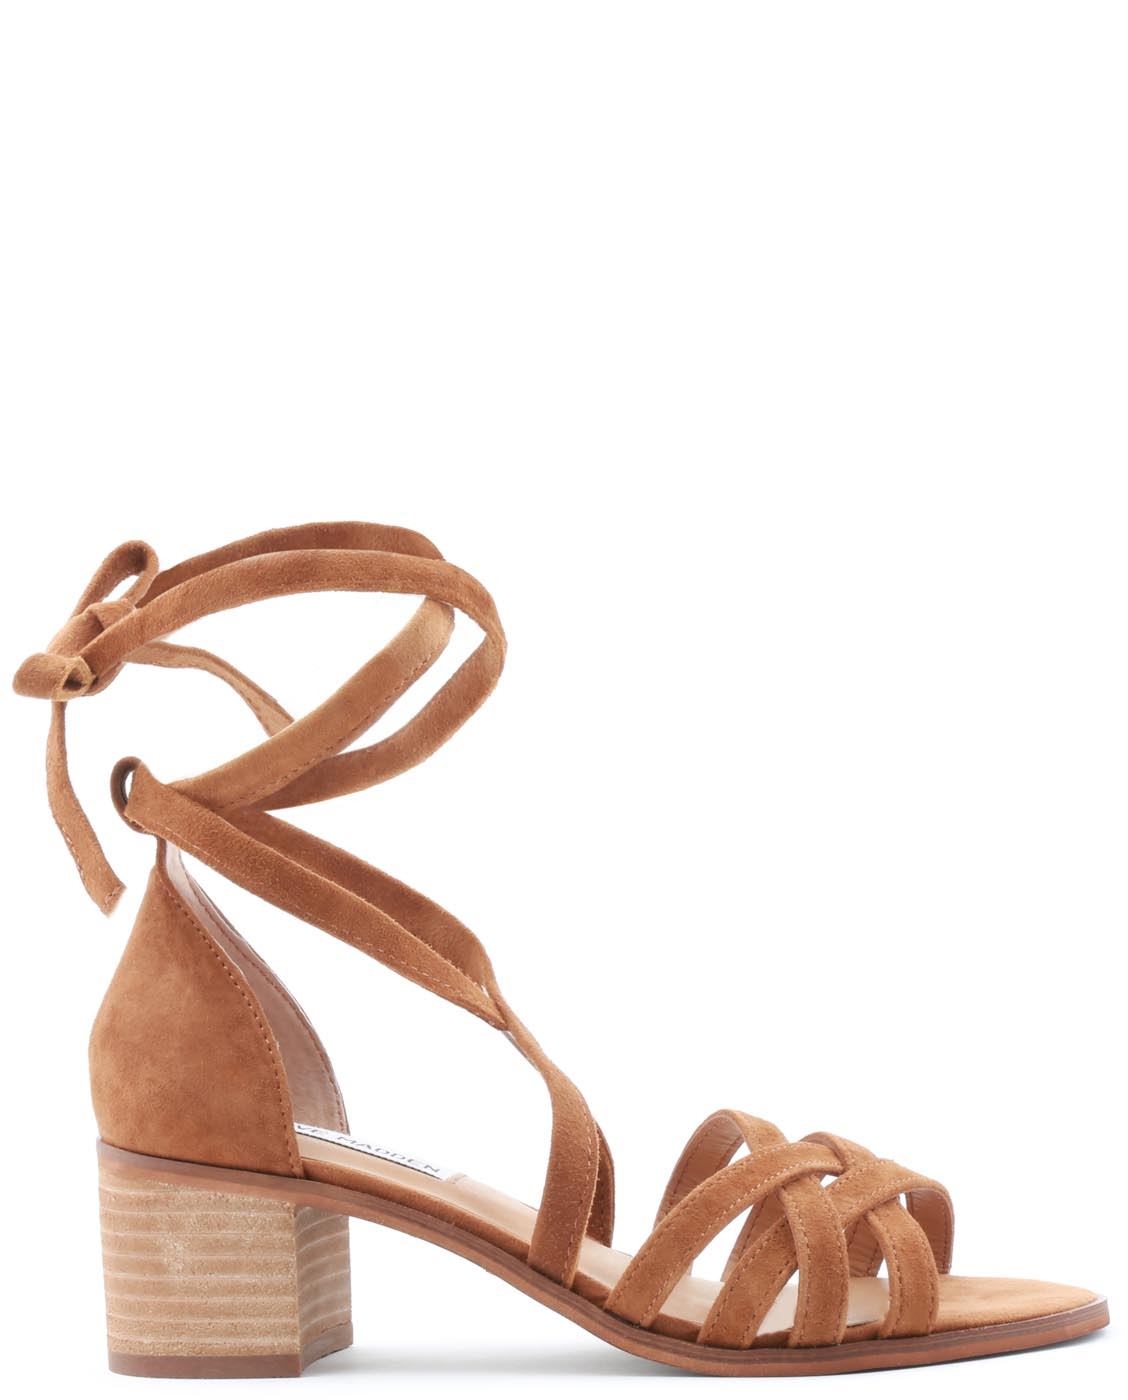 3a5771f05ce Steve Madden Revere Heels - Fashion You Up. Steve Madden Revere Suede Ankle  Strap ...